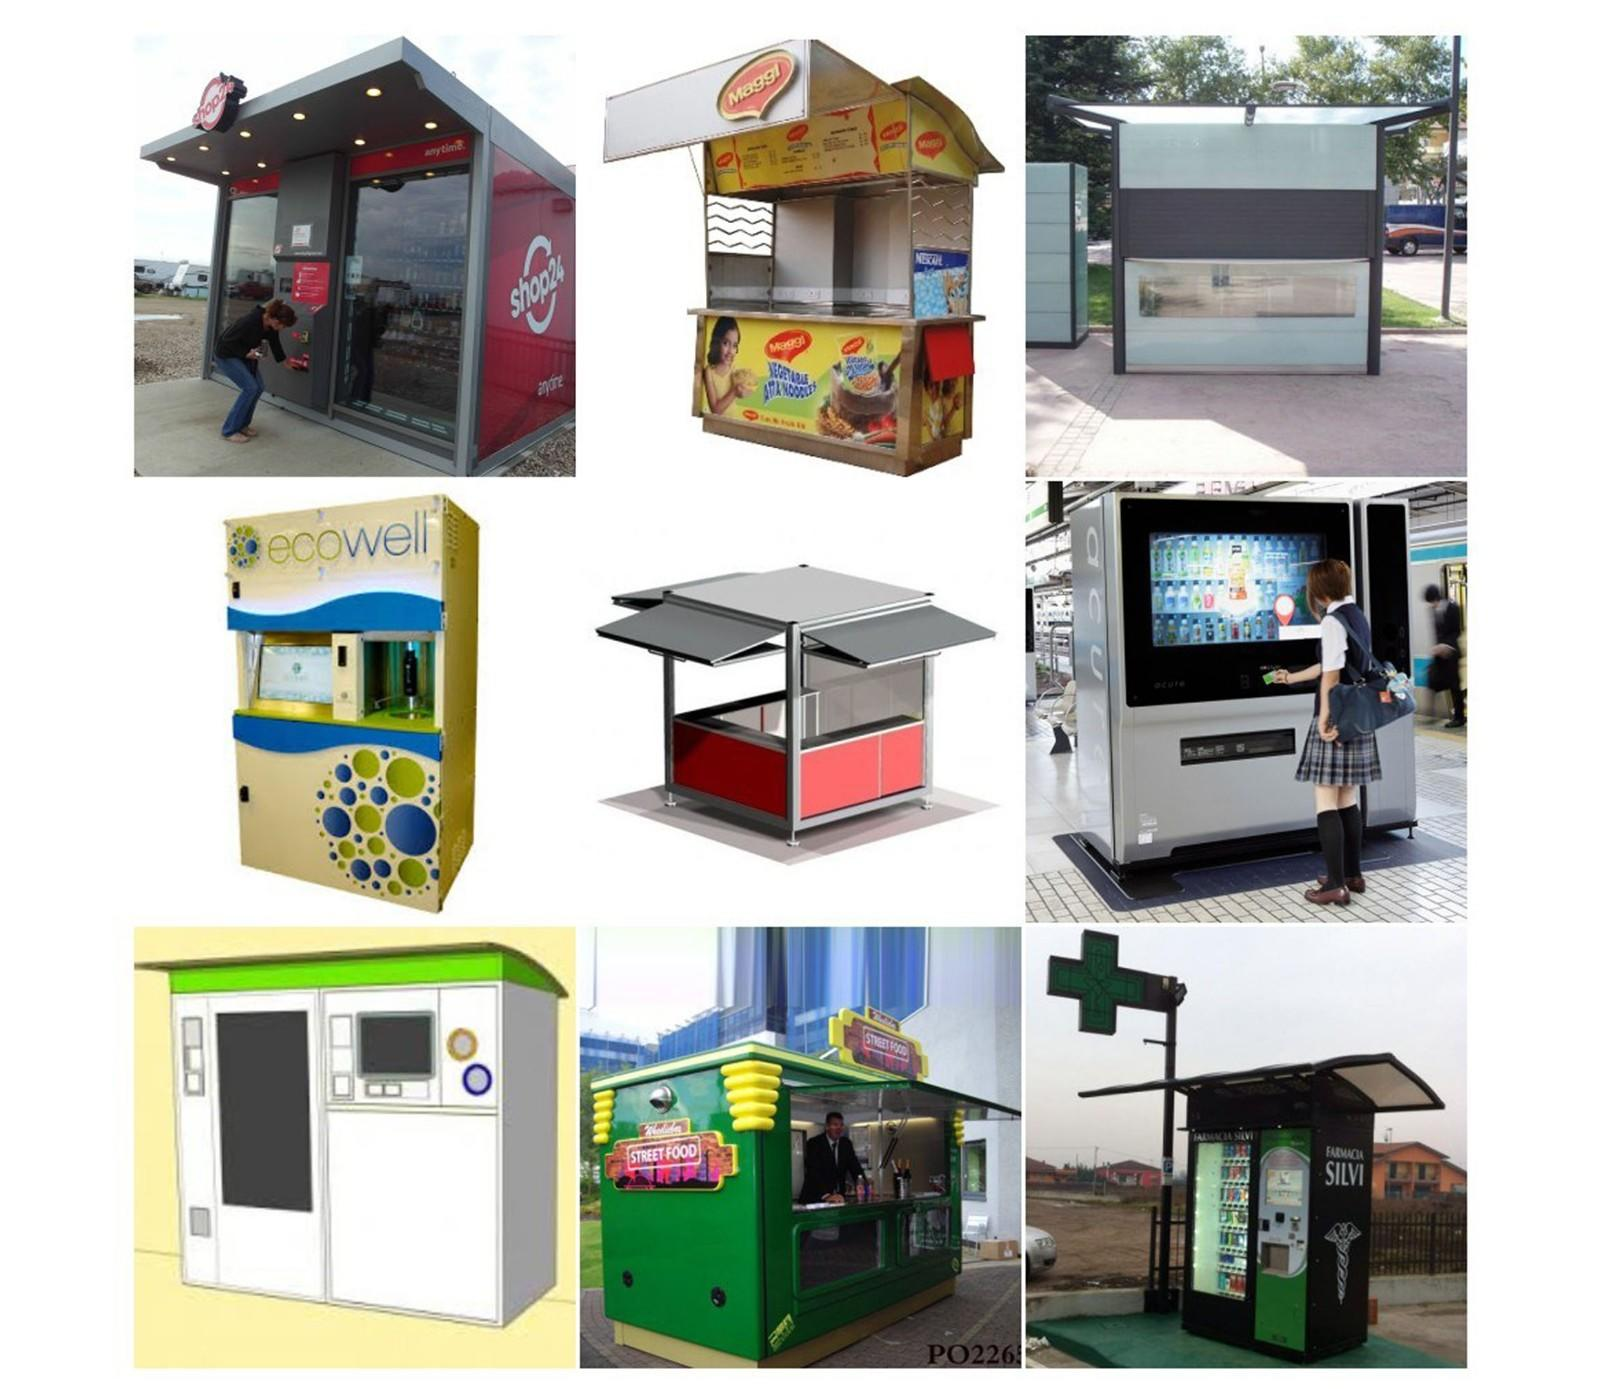 YEROO-Best Pole Led Display Customized Outdoor Advertising Vending Kiosk Manufacture-2